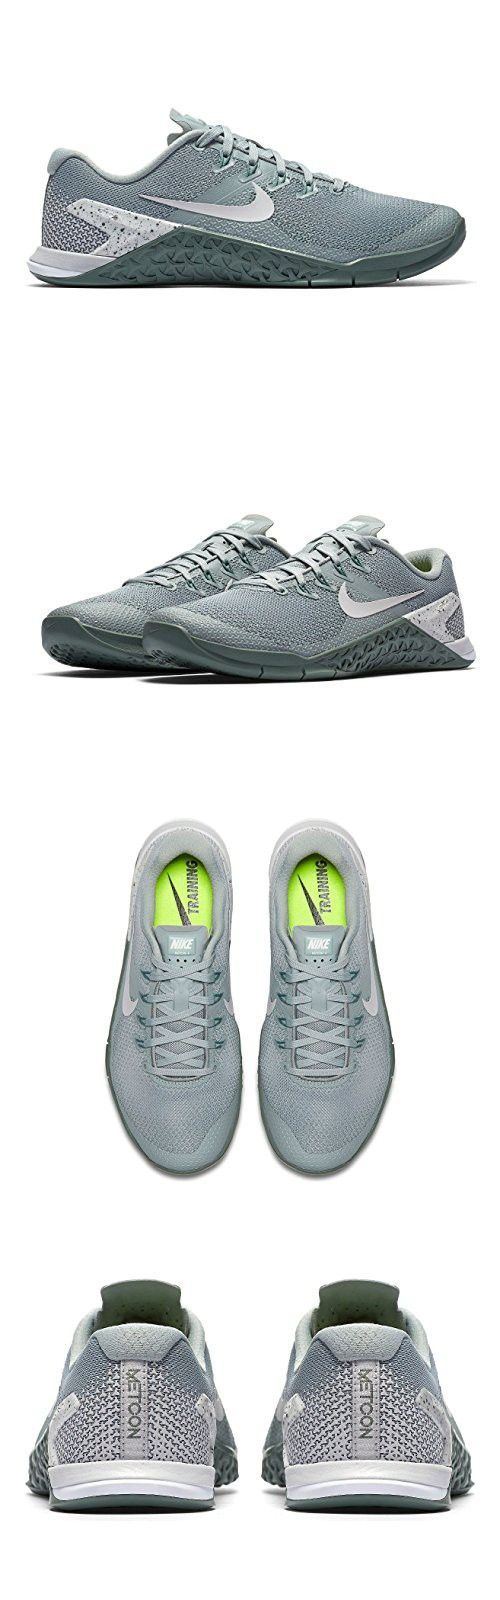 46df9dc9eb158a NIKE Women s Metcon 4 Training Shoe Light Pumice Vast Grey Clay Green White  Size 9 M US